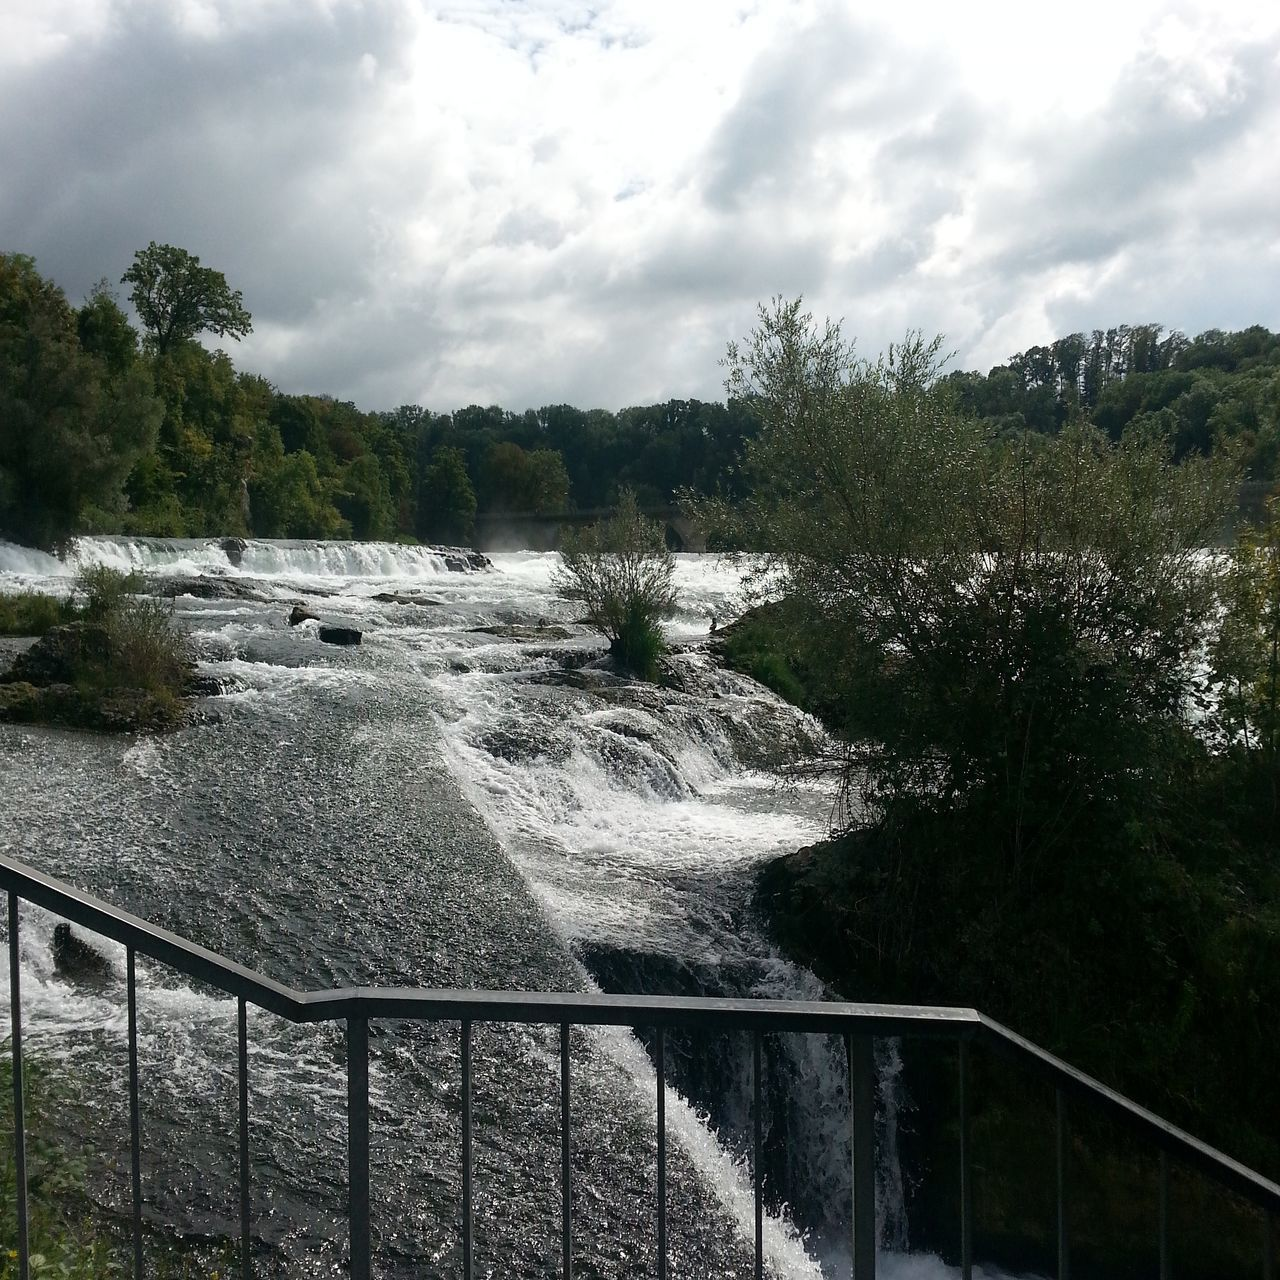 water, tree, cloud - sky, nature, sky, no people, day, beauty in nature, scenics, railing, river, outdoors, motion, tranquility, tranquil scene, waterfall